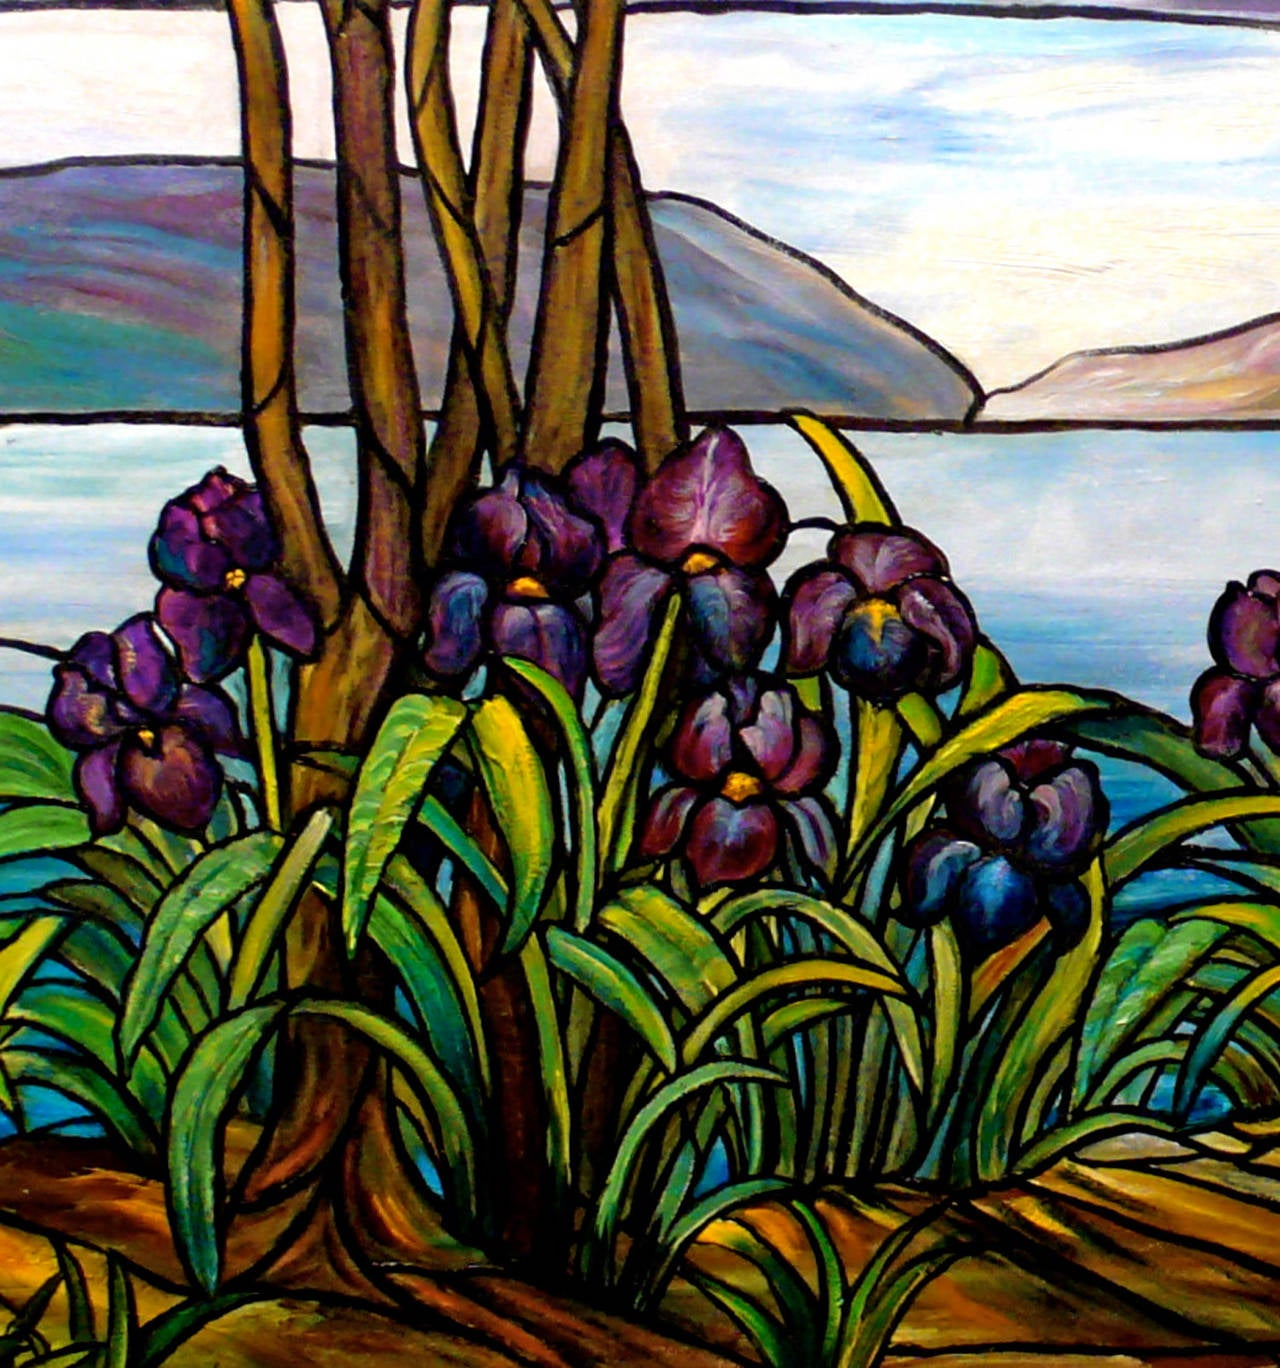 Garden Landscape with Water Views - Contemporary Painting by Kristina Nemethy